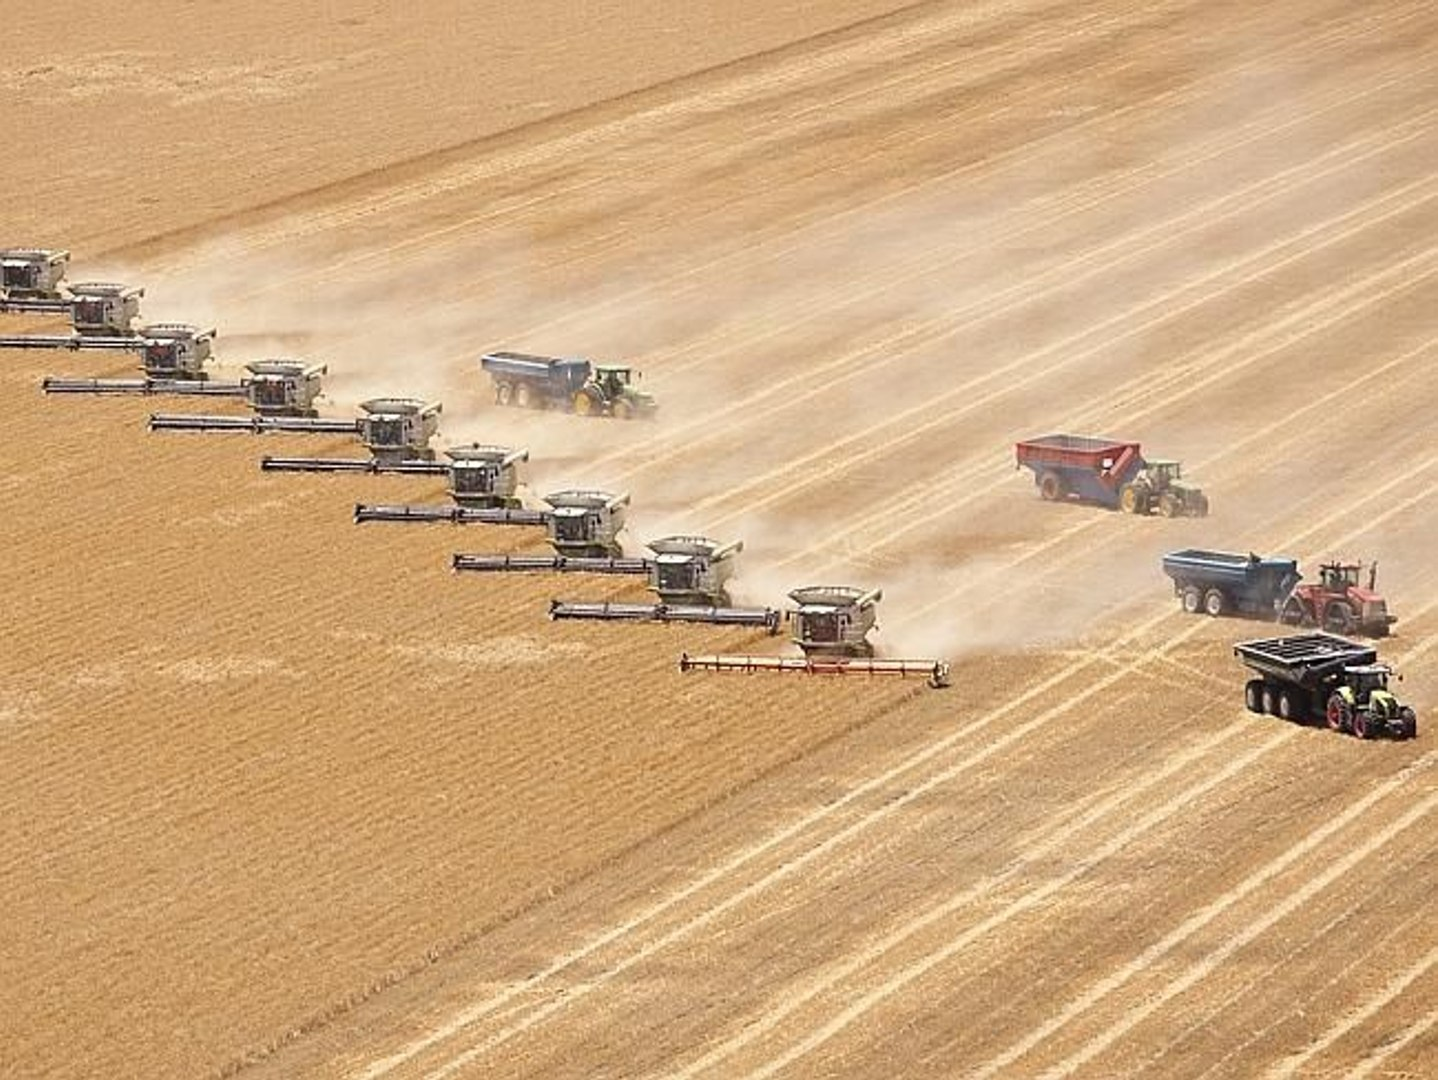 Biggest combine harvesters in the world